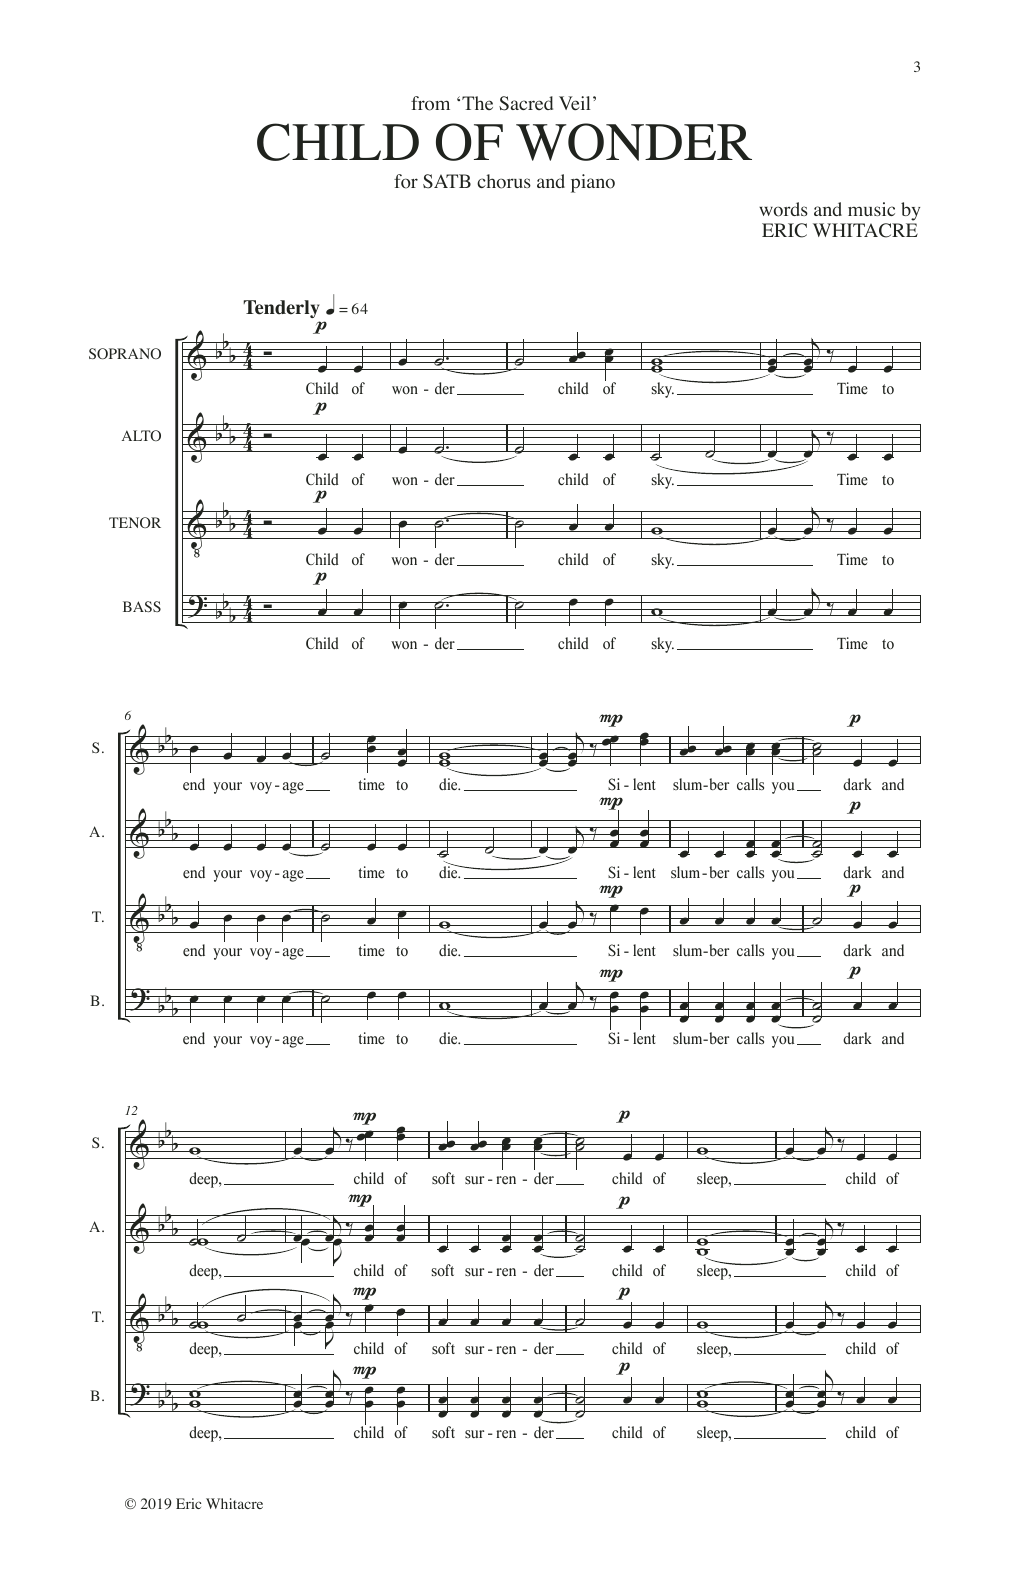 Eric Whitacre Child Of Wonder (from The Sacred Veil) sheet music notes and chords. Download Printable PDF.